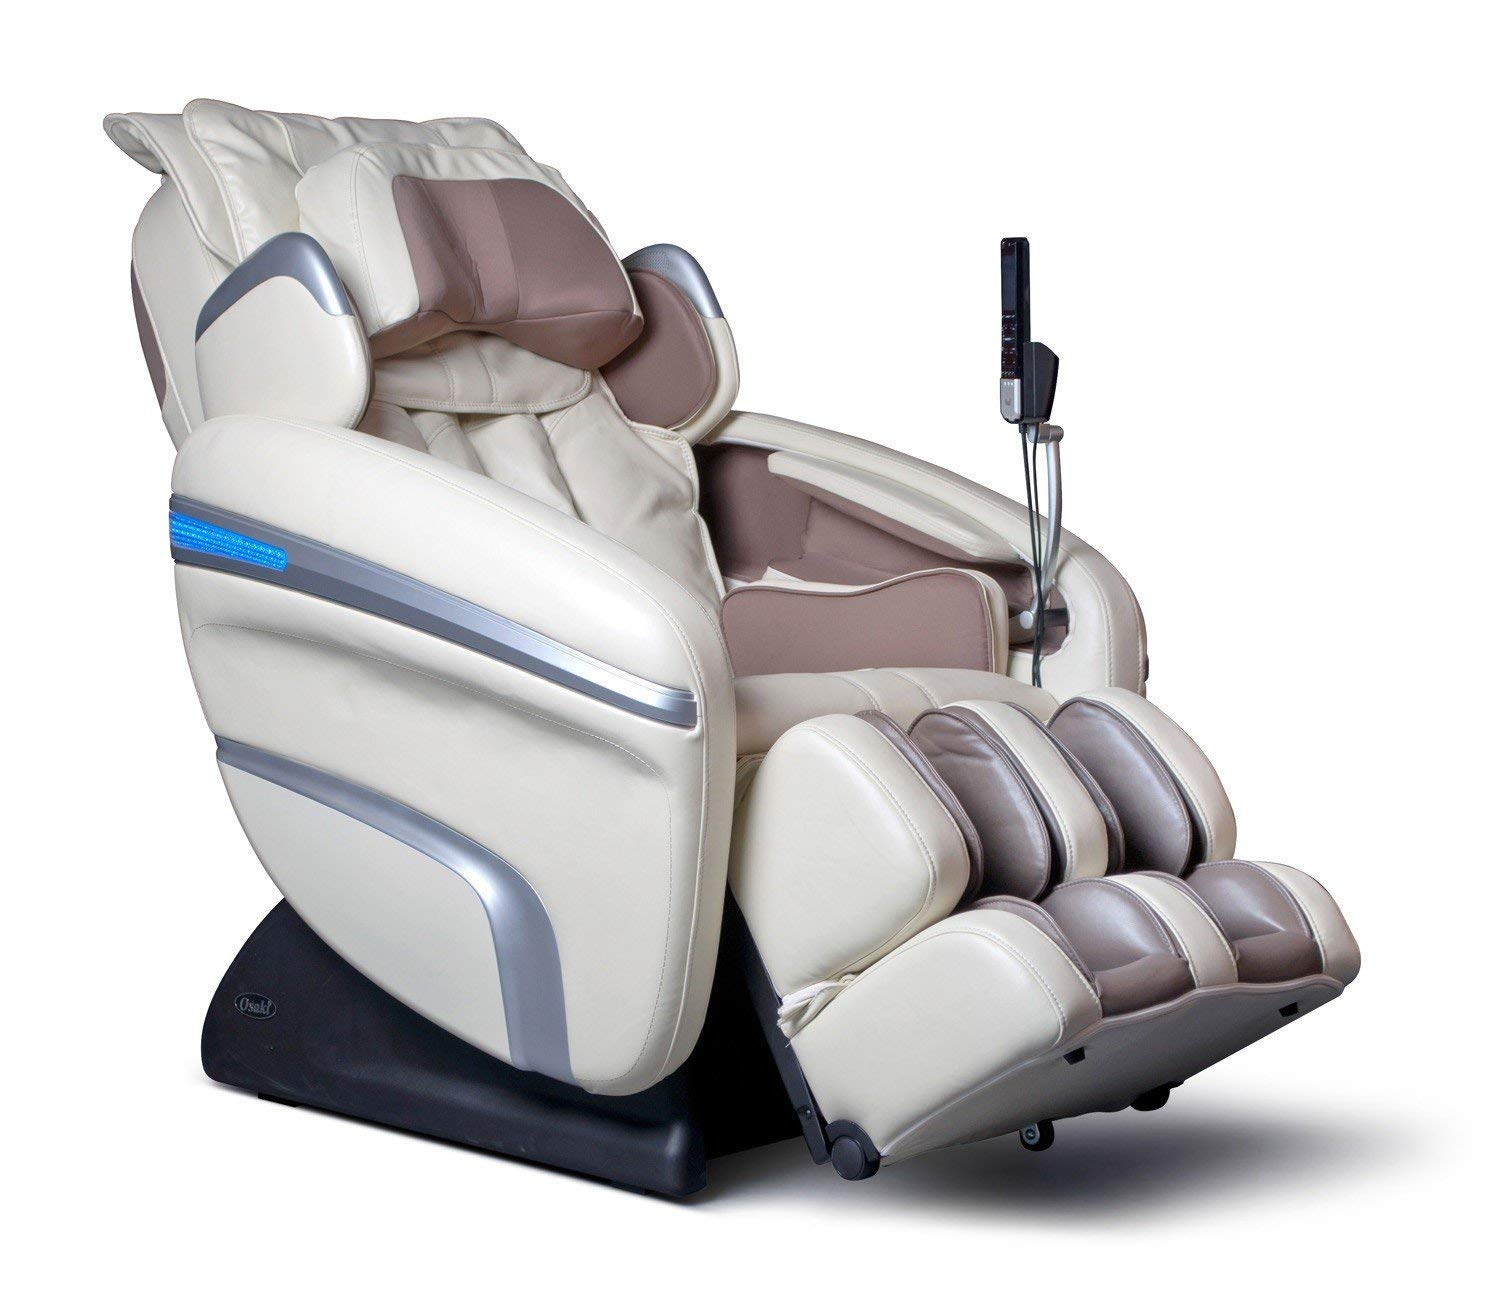 Osaki Massage Chairs Osaki Os 7200h Massage Chair Review Massagers And More